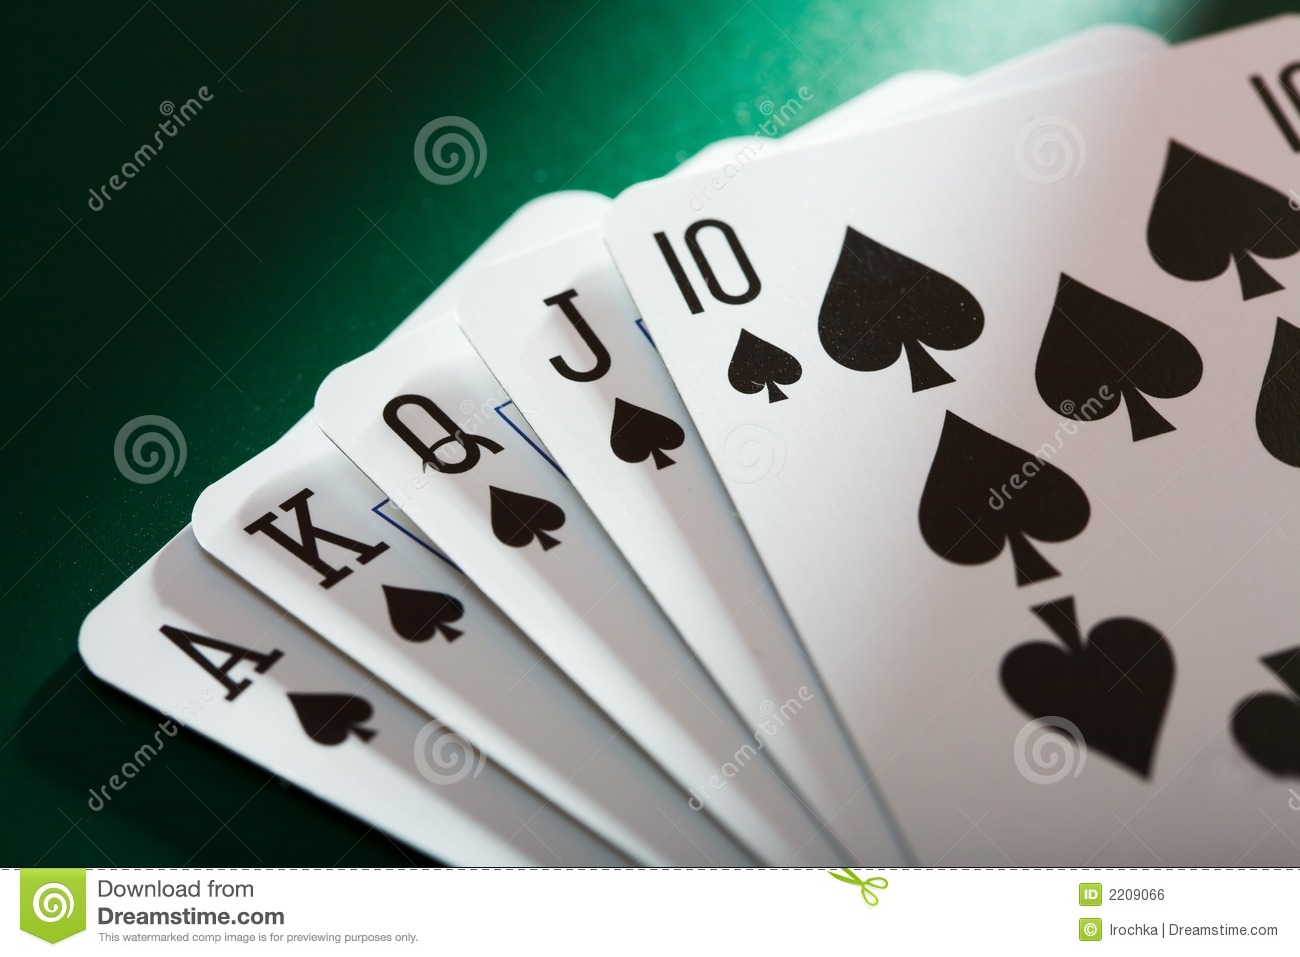 Cassino card game  Wikipedia